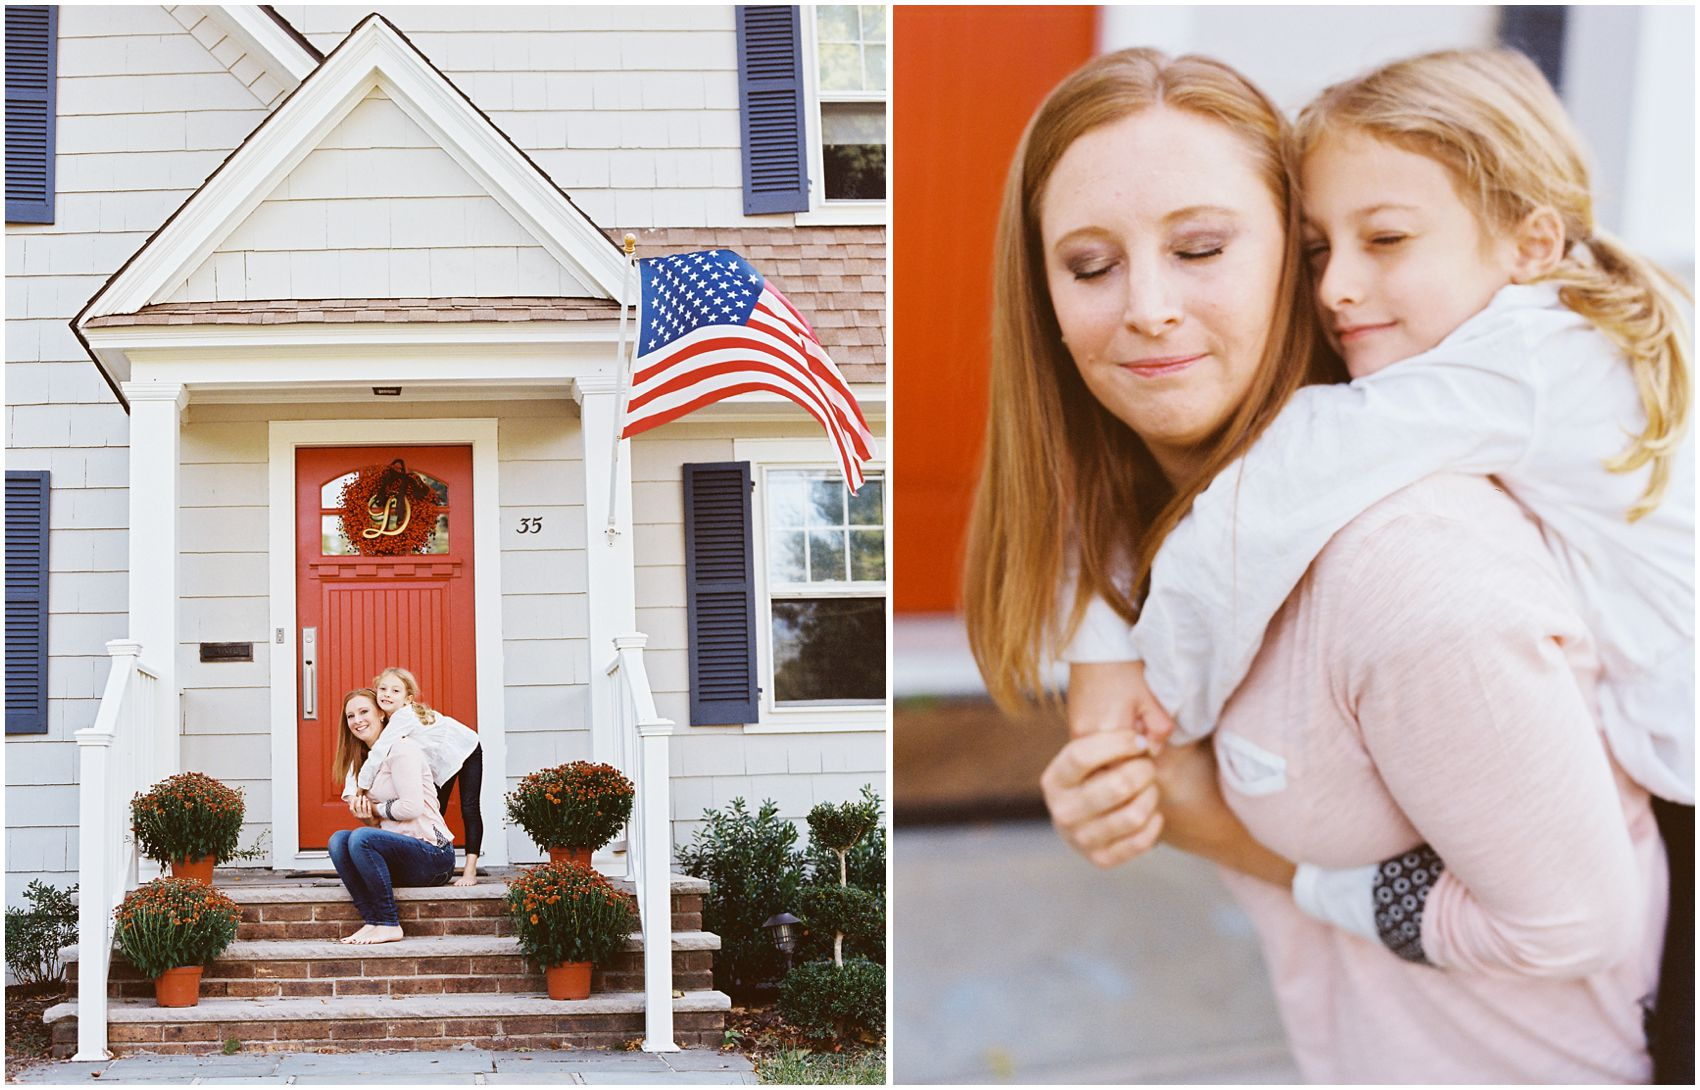 mom hugging her daughter in front of the home with American flag